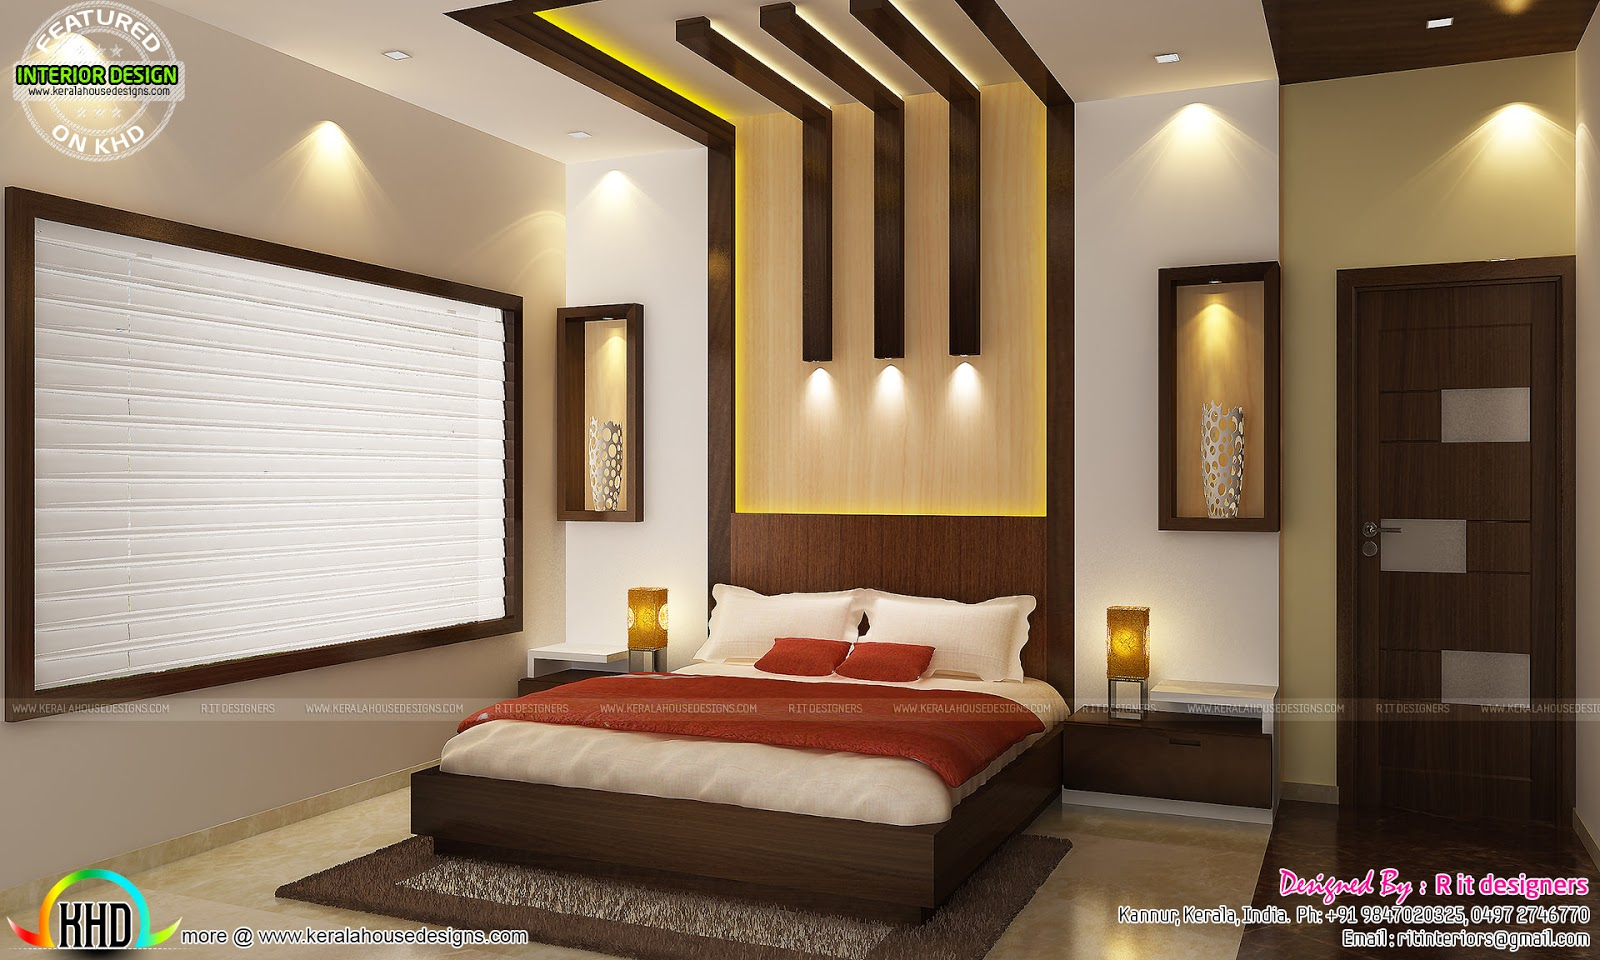 Kitchen living bedroom dining interior decor kerala for Latest home interior design